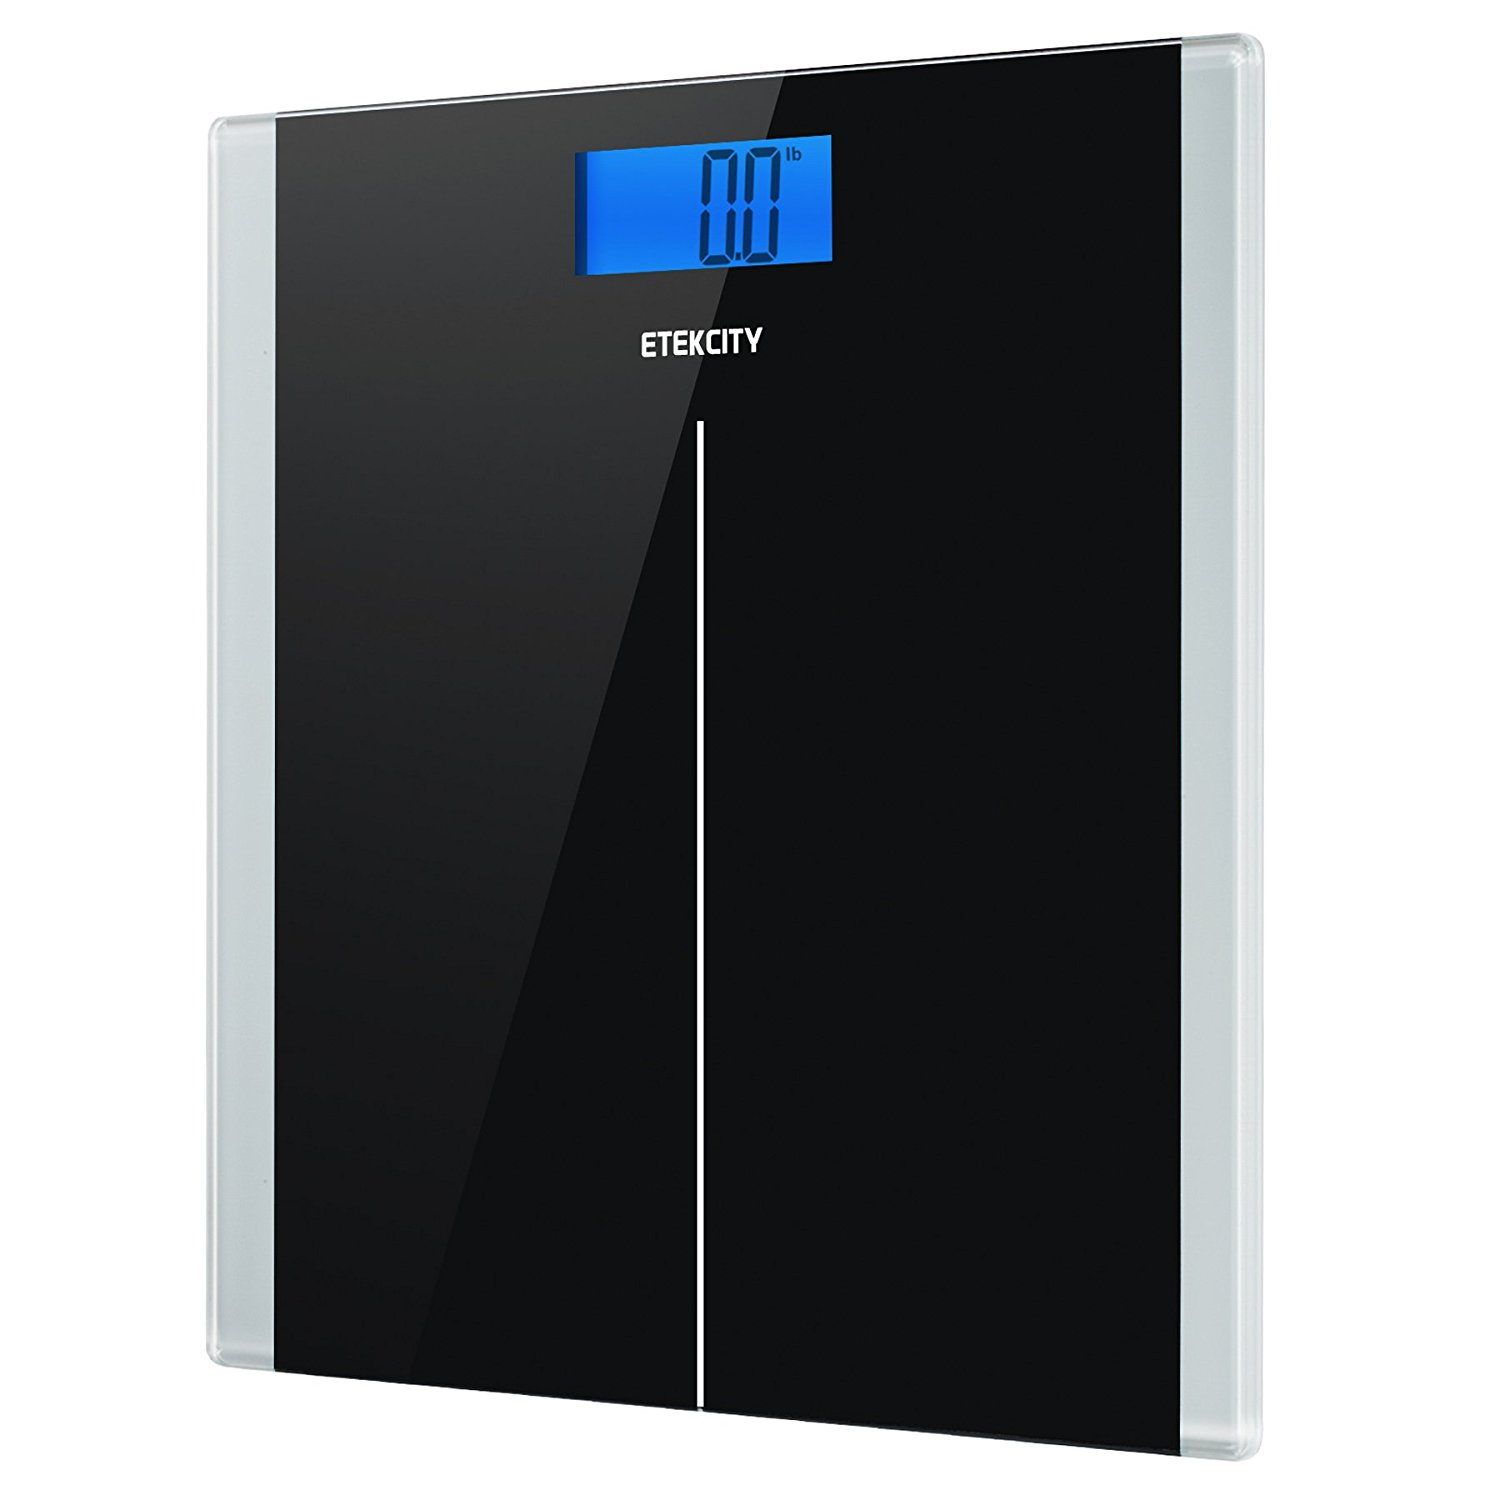 6 best and most accurate bathroom scales 6 Most Accurate Bathroom Scales - Body Composition Monitor for All